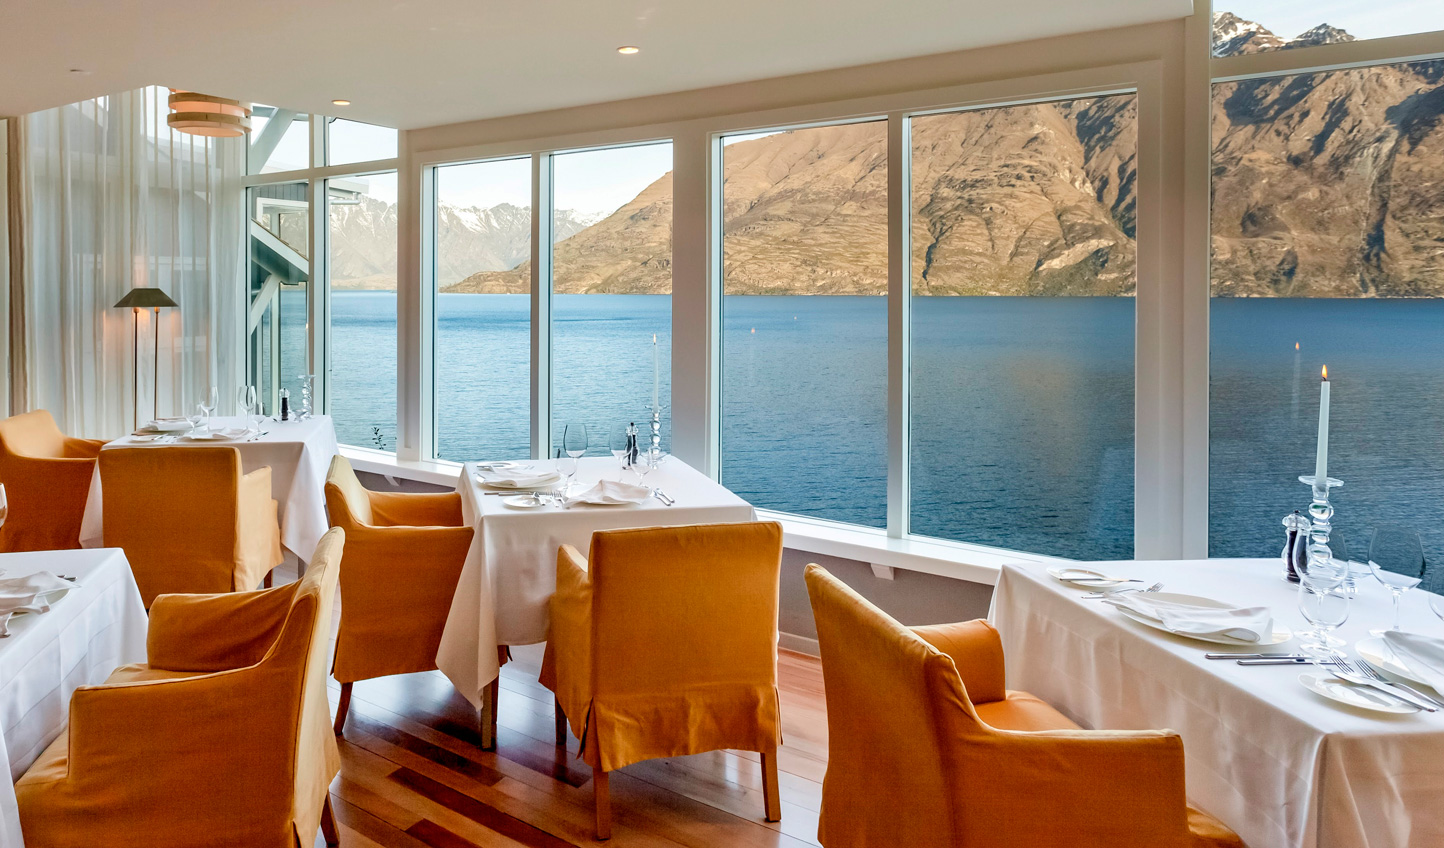 Dine with one of the country's most spectacular views